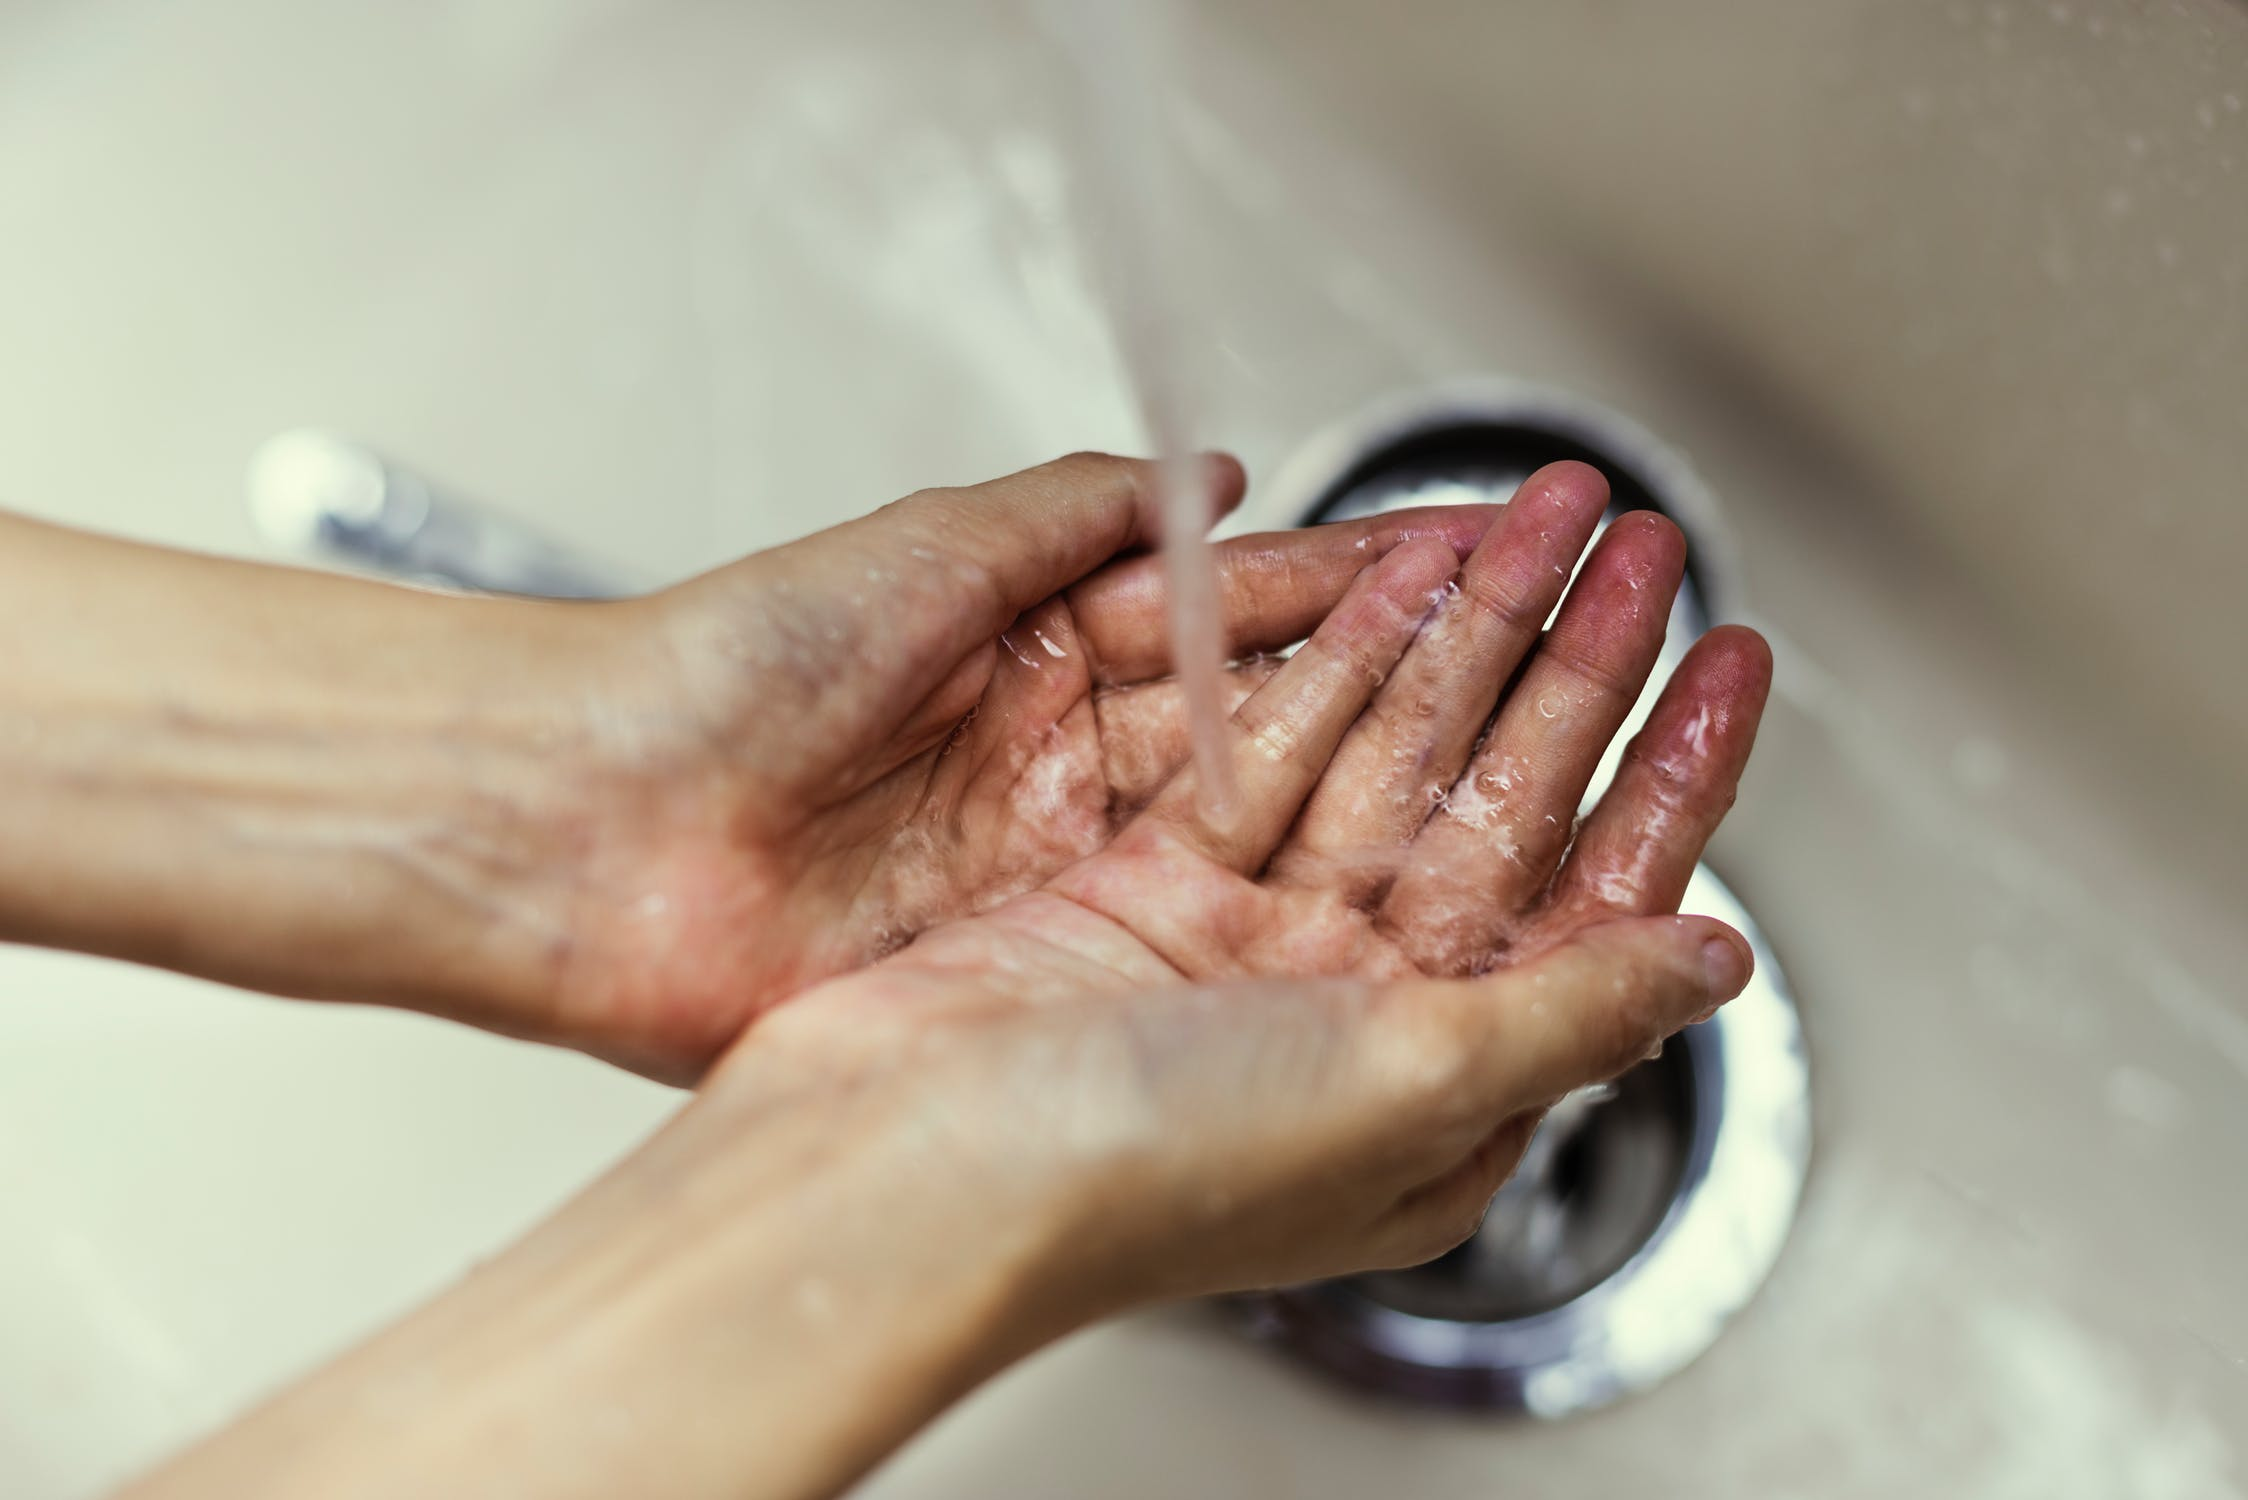 Washing hands during OCD